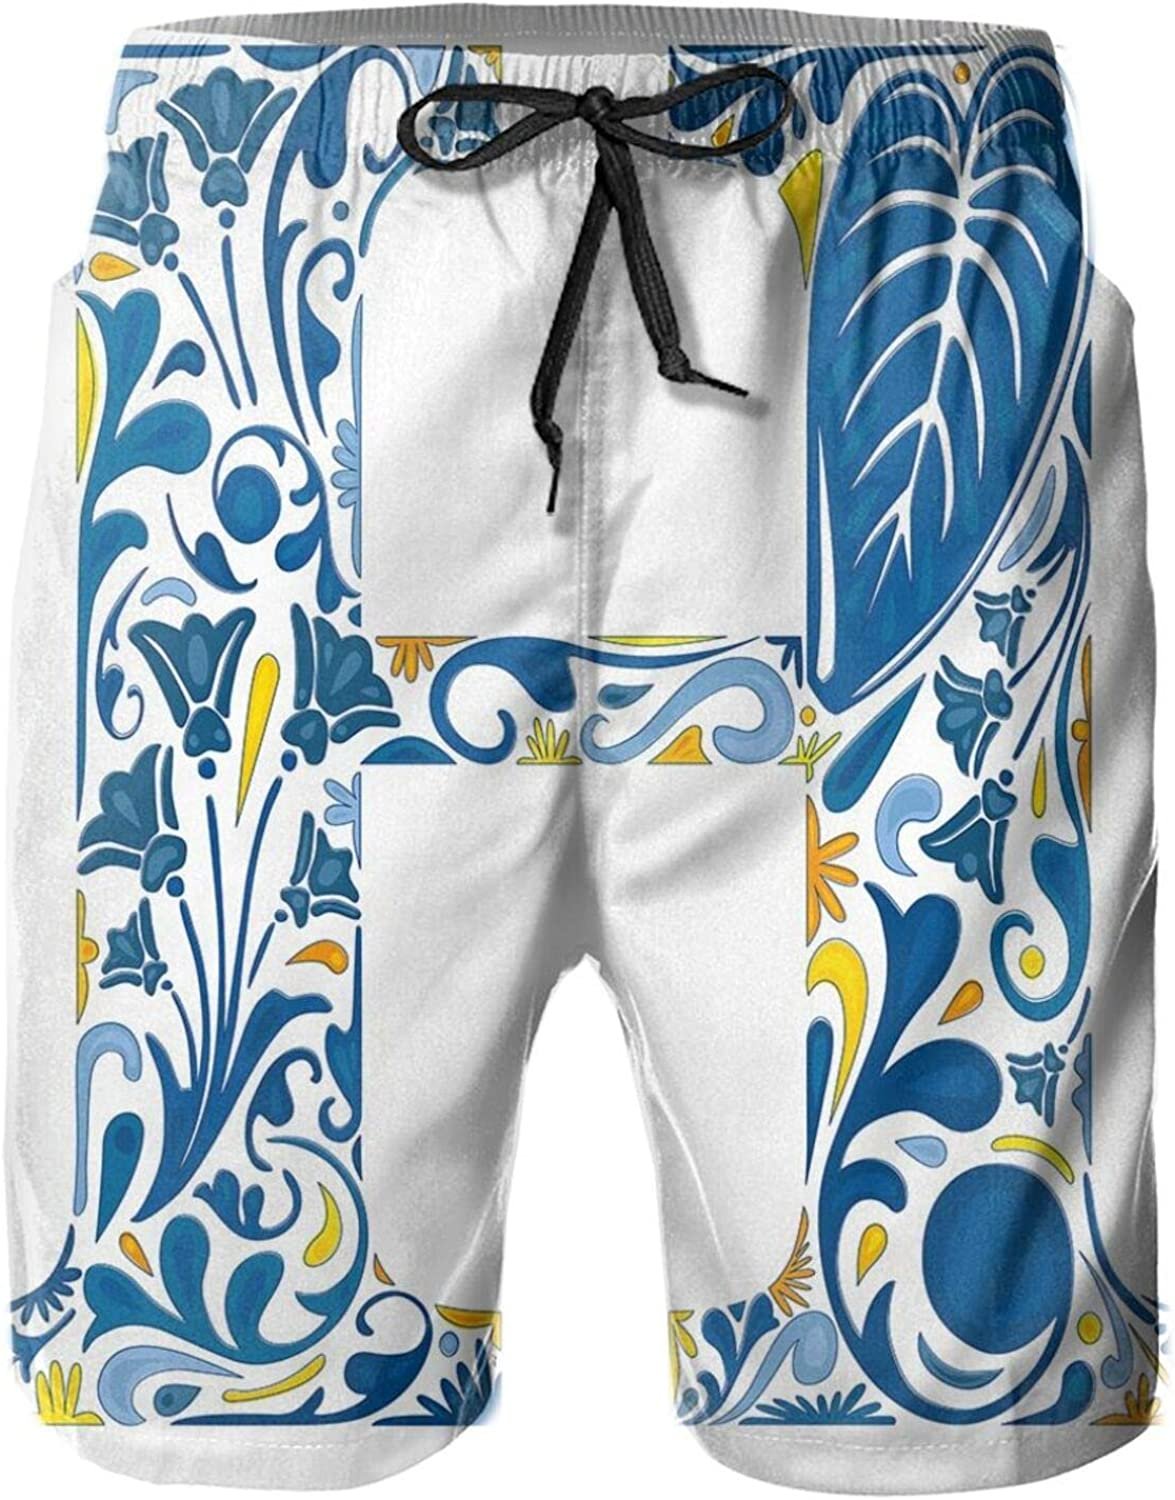 MUJAQ Azulejo Frame Flowers and Leaves Abstract Color Scheme Portuguese Inspired Mens Swim Trucks Shorts with Mesh Lining,M